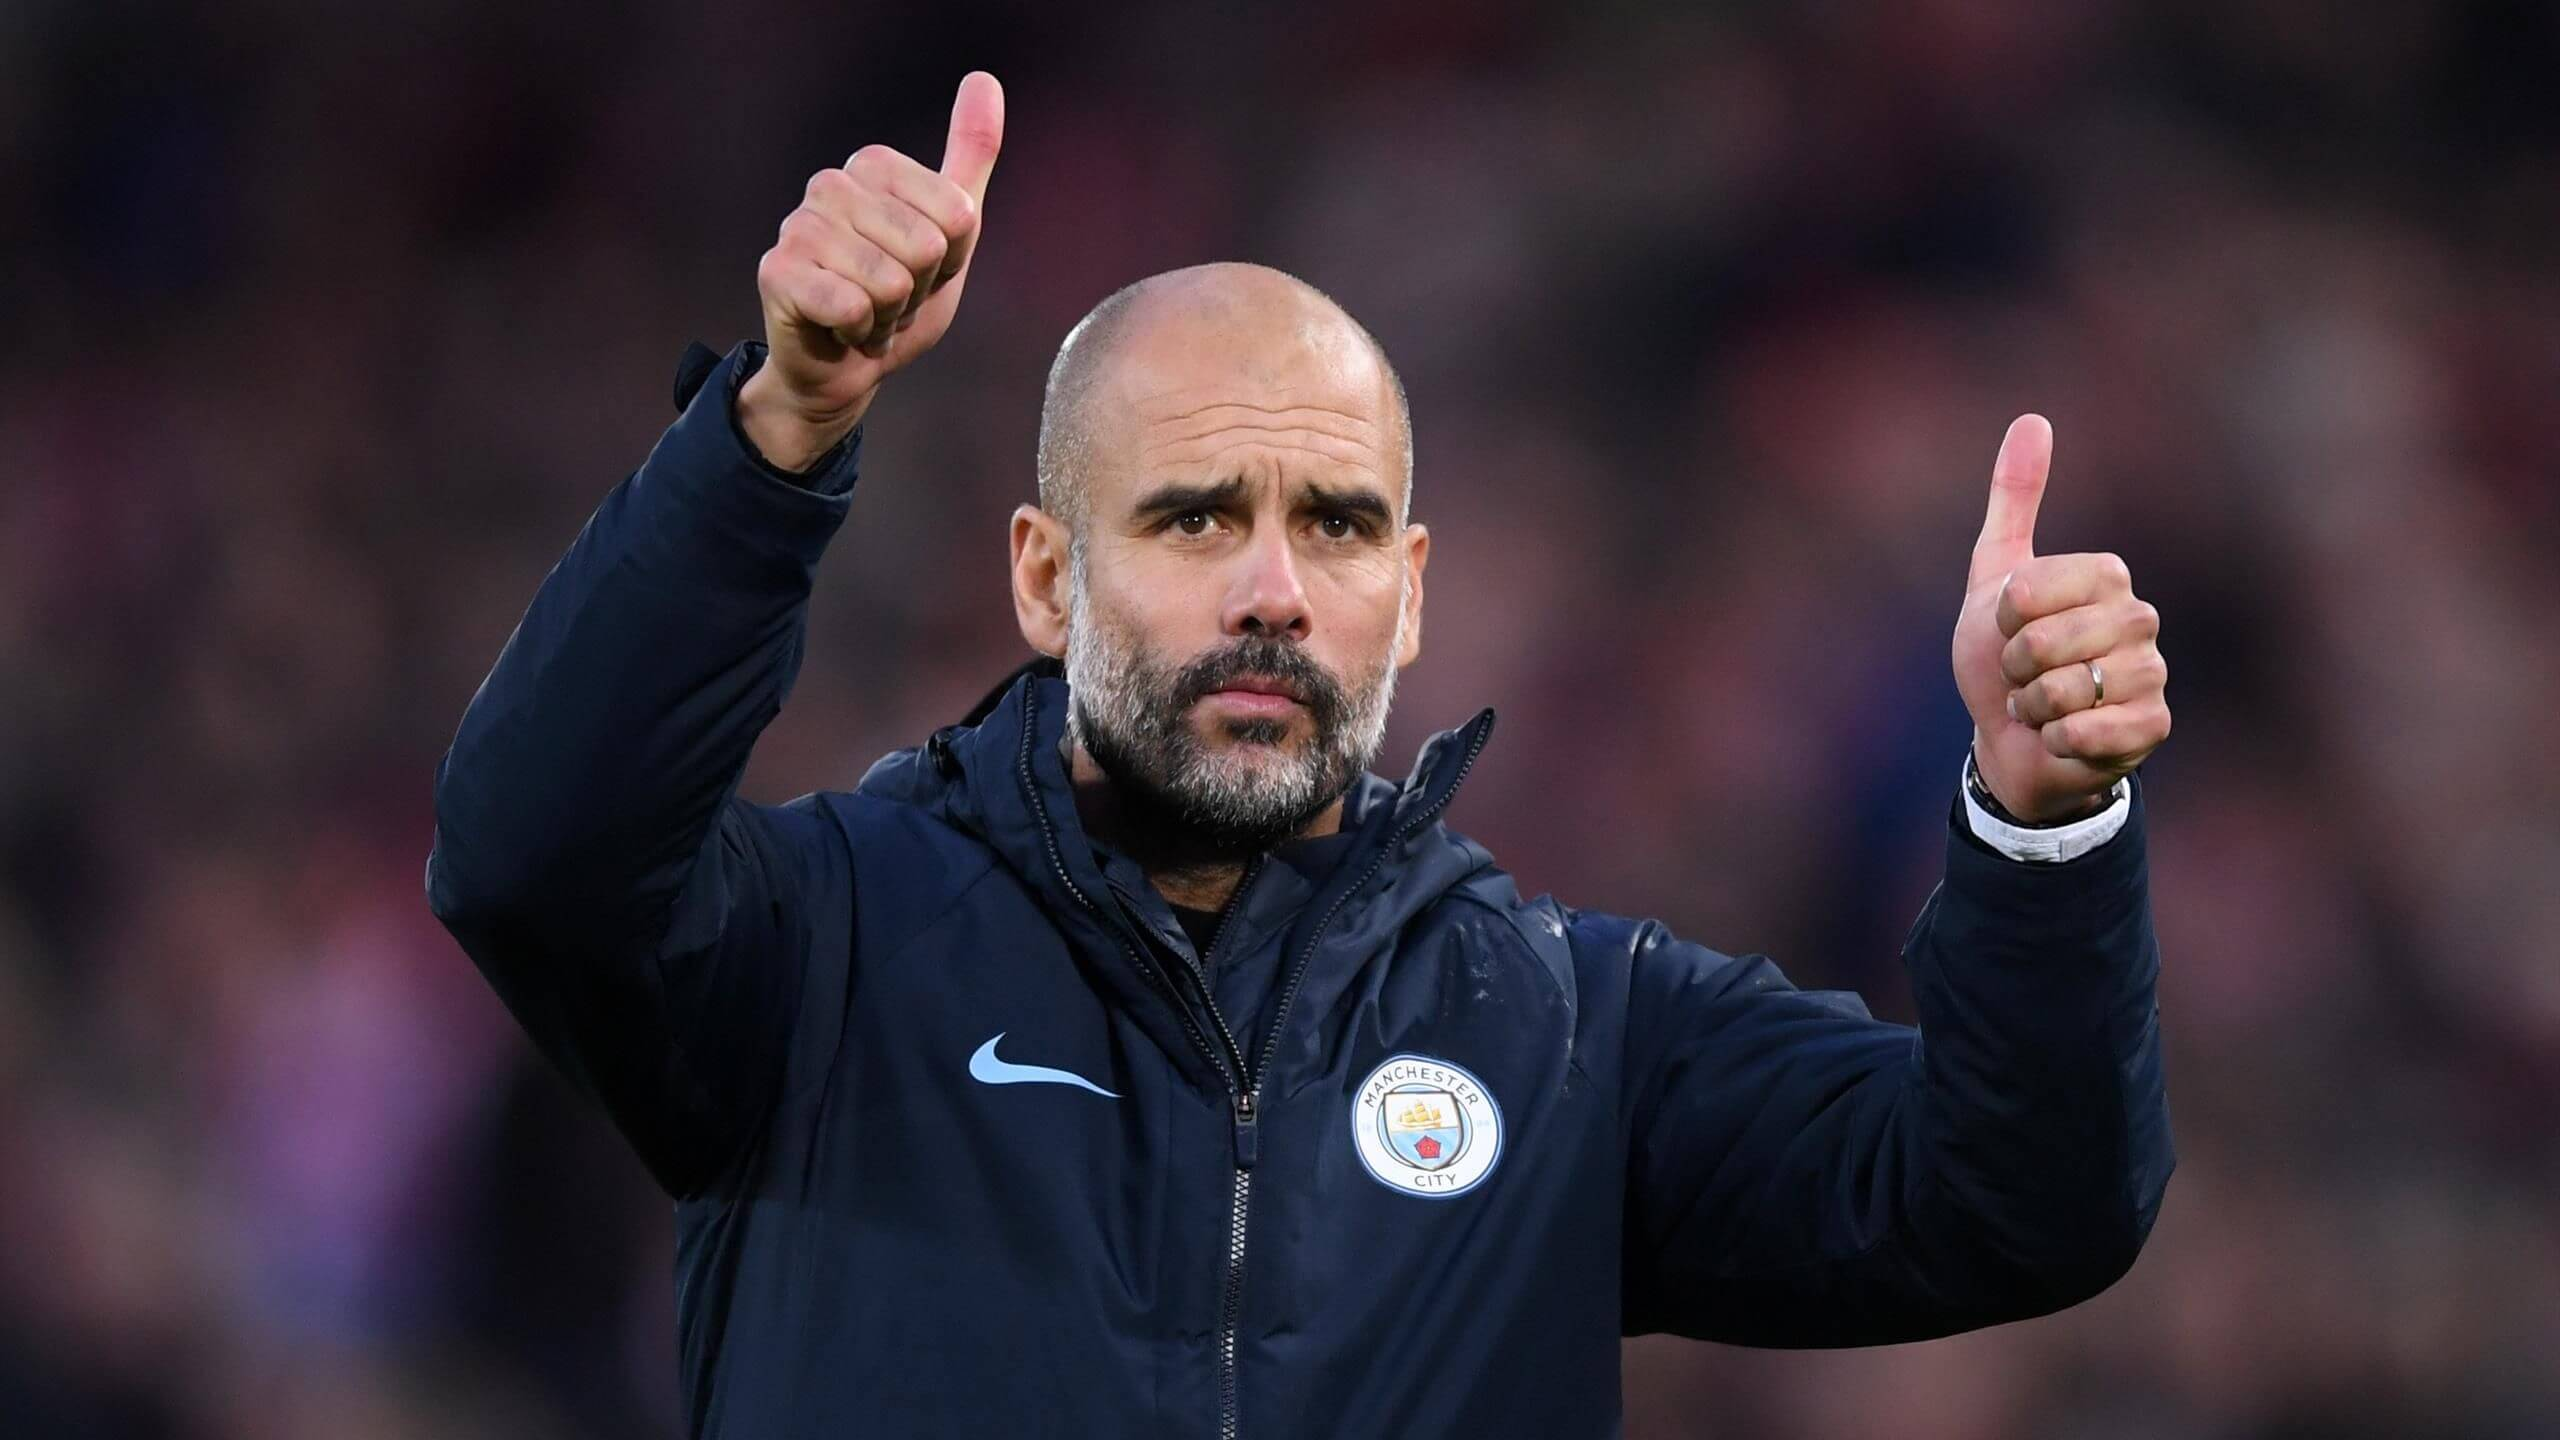 EPL: Manchester City manager Pep Guardiola on signs new two-year contract till 2023